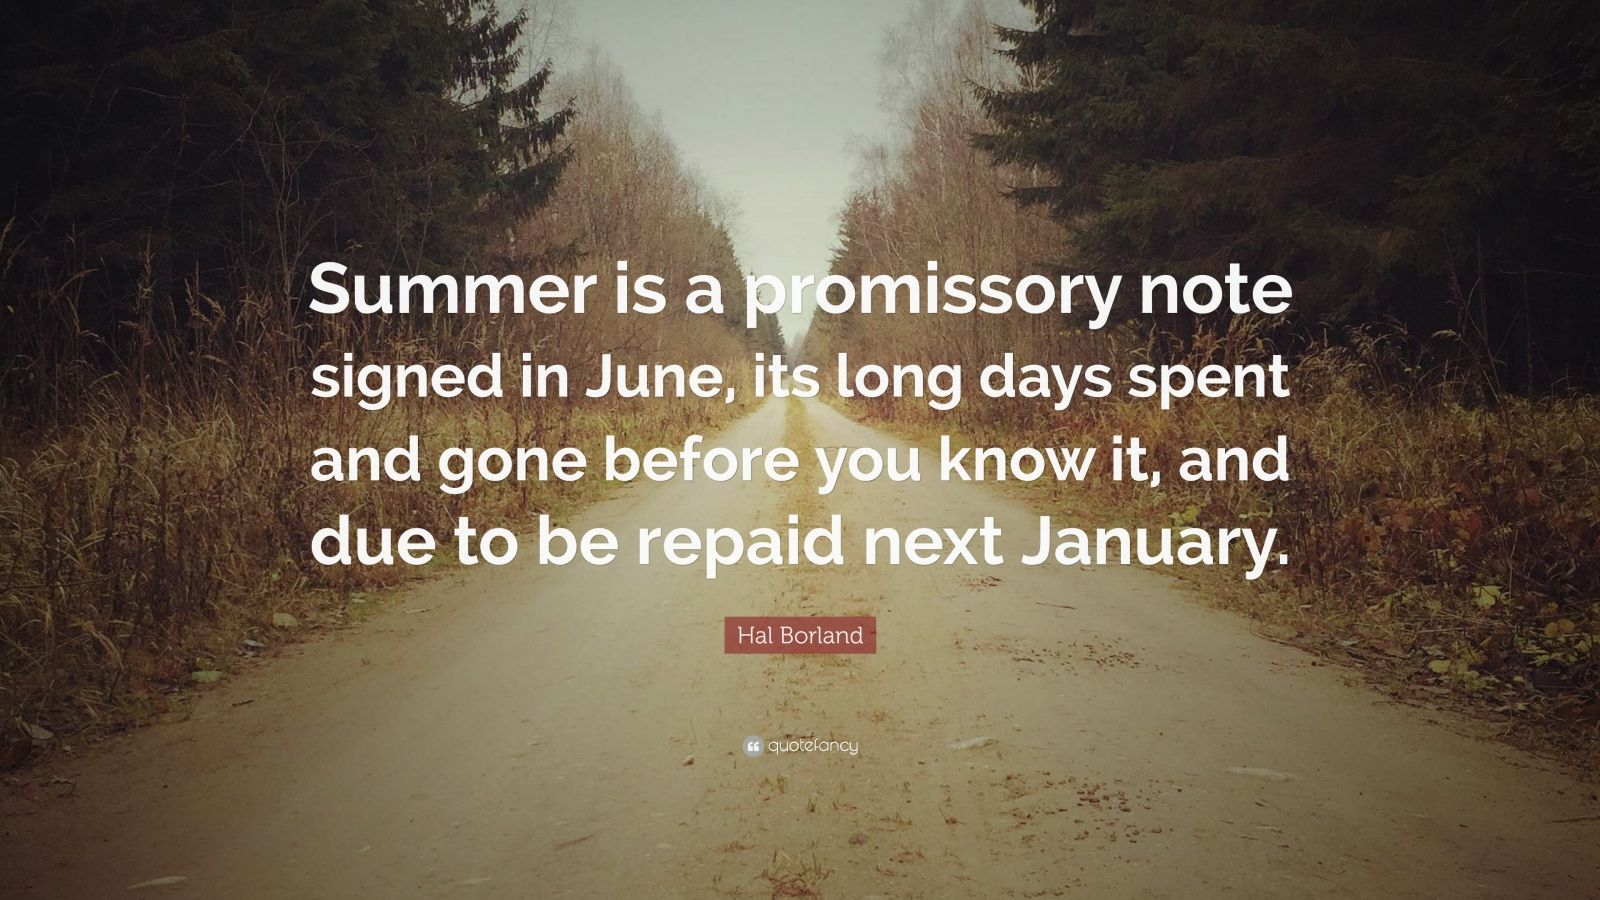 """Hal Borland Quote: """"Summer is a promissory note signed in June, its long days spent and gone before you know it, and due to be repaid next January."""""""